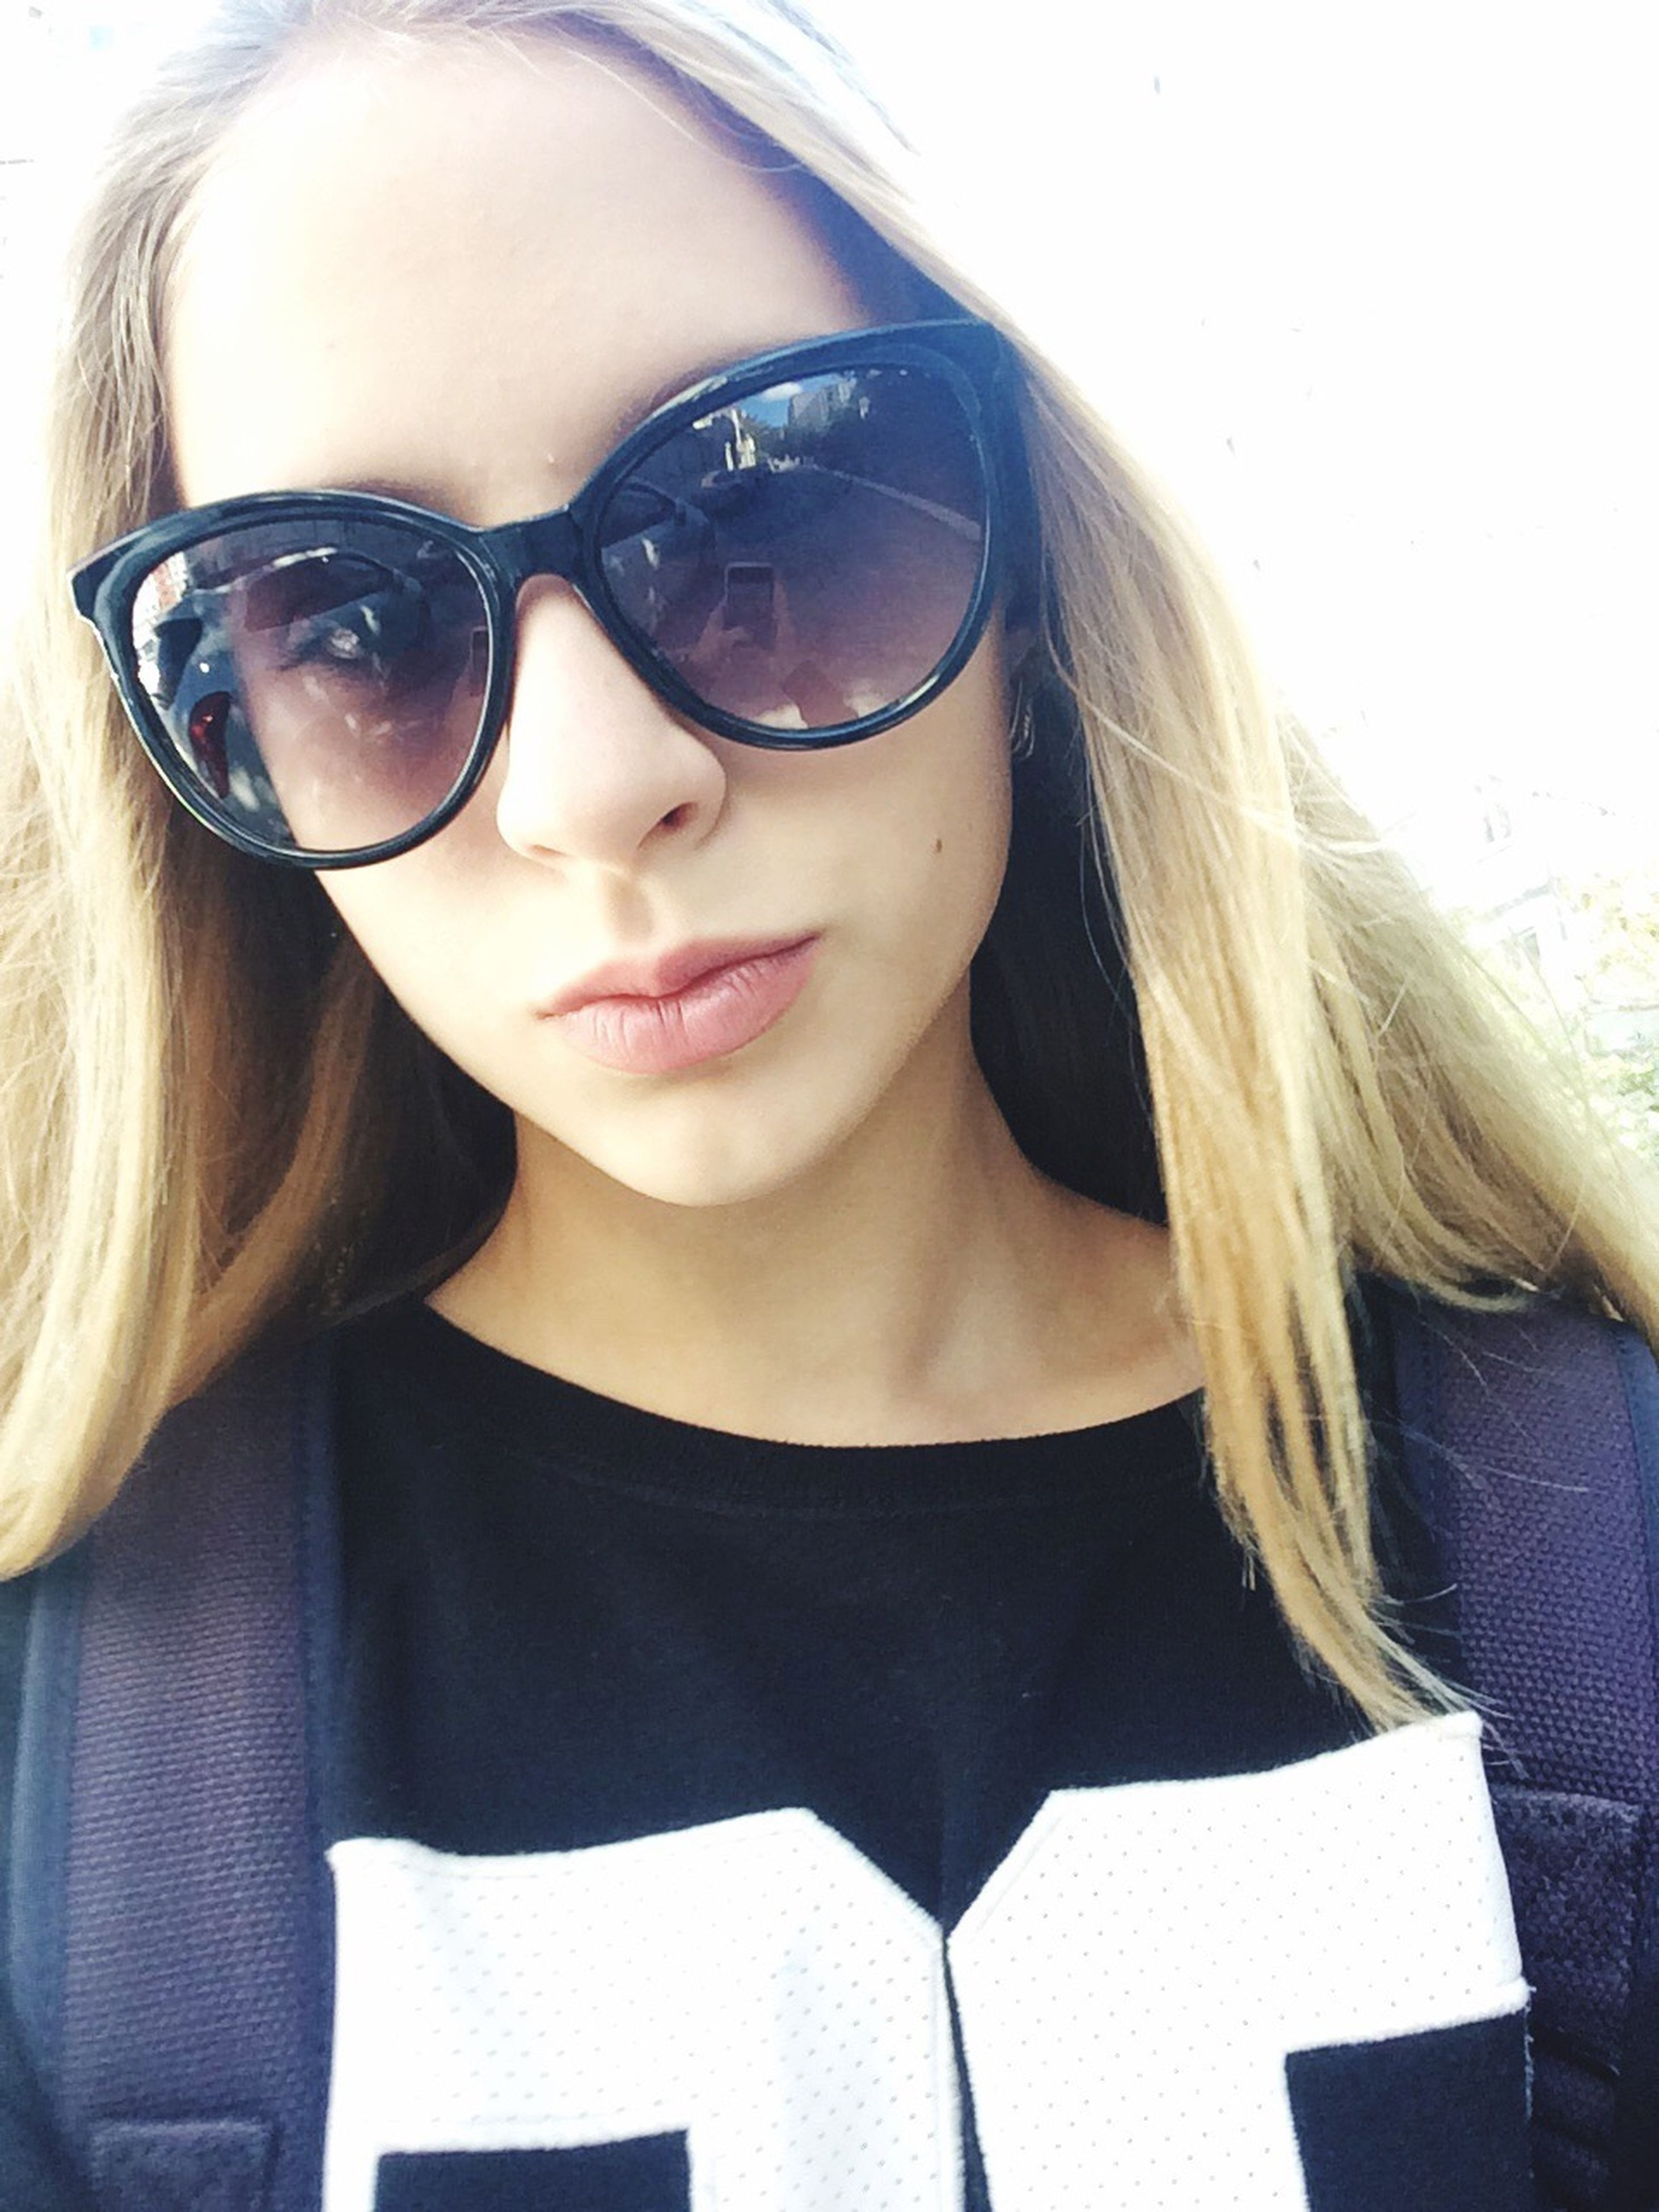 young adult, lifestyles, leisure activity, young women, sunglasses, person, front view, long hair, casual clothing, outdoors